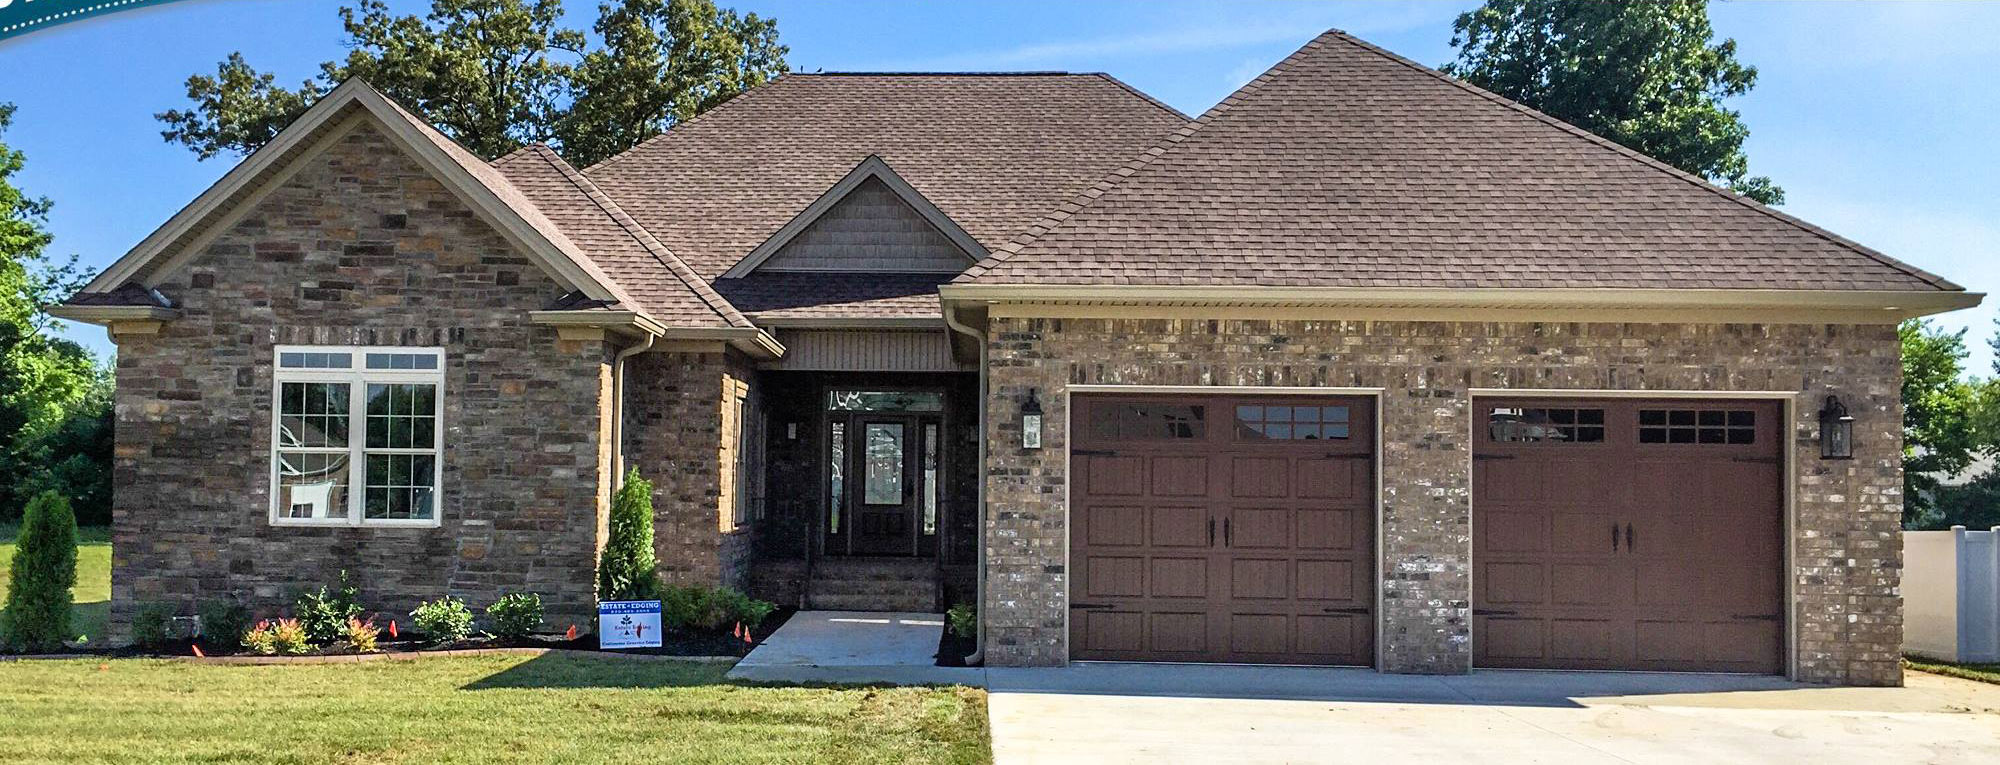 St jude dream homes i jeda homes llc for Home builders in kentucky